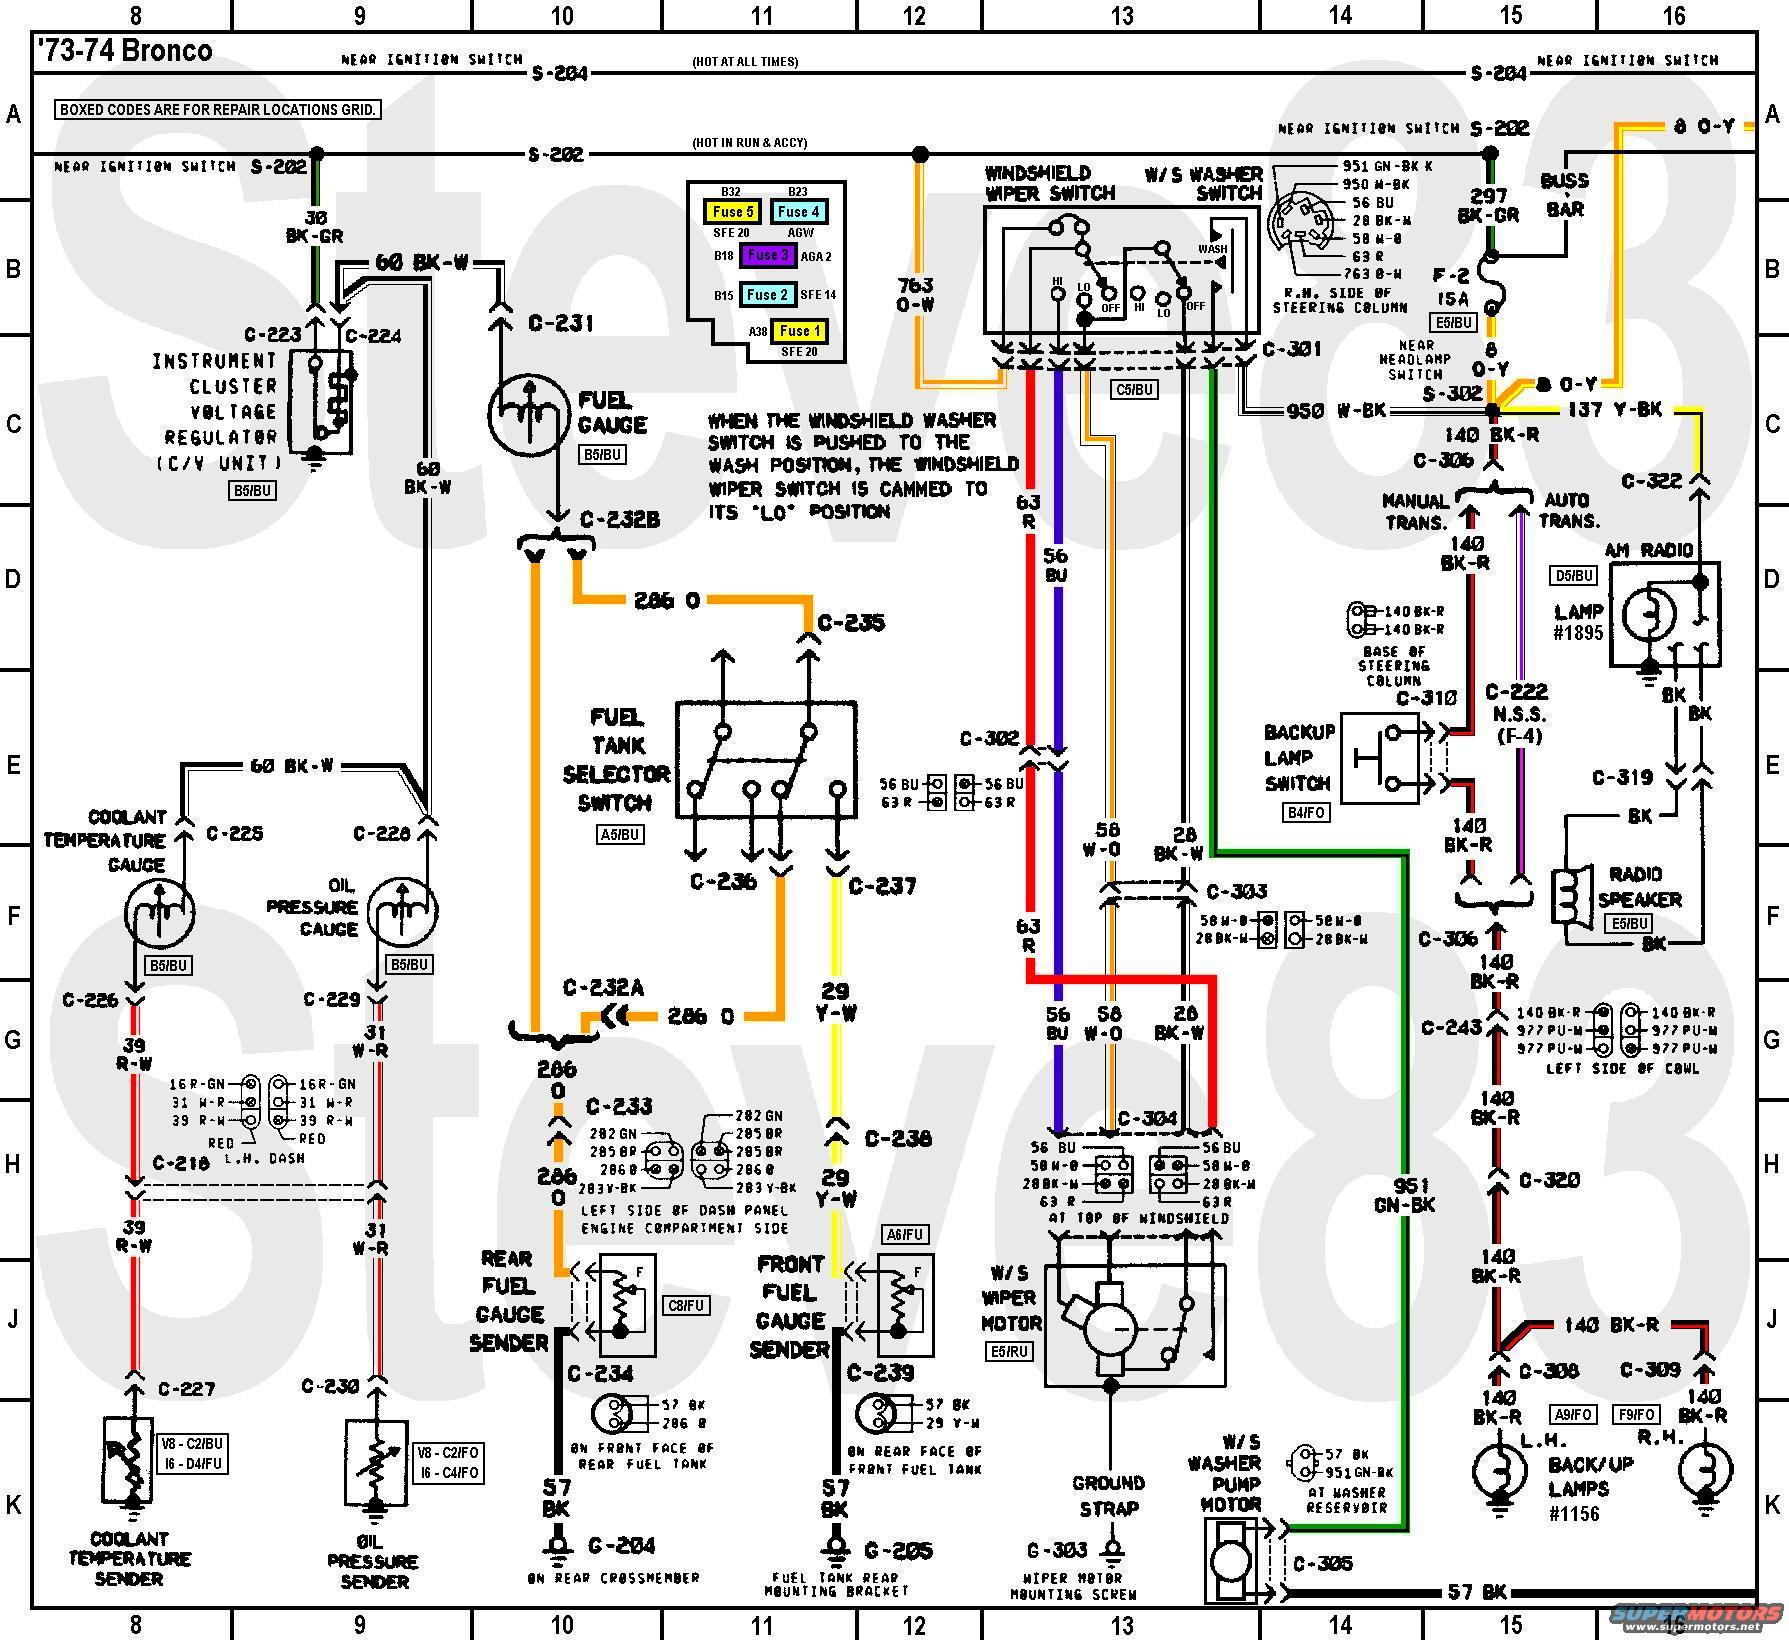 Magnificent early bronco fuse box diagram gallery electrical and lovely 1972 ford bronco wiring diagram photos electrical and sciox Image collections